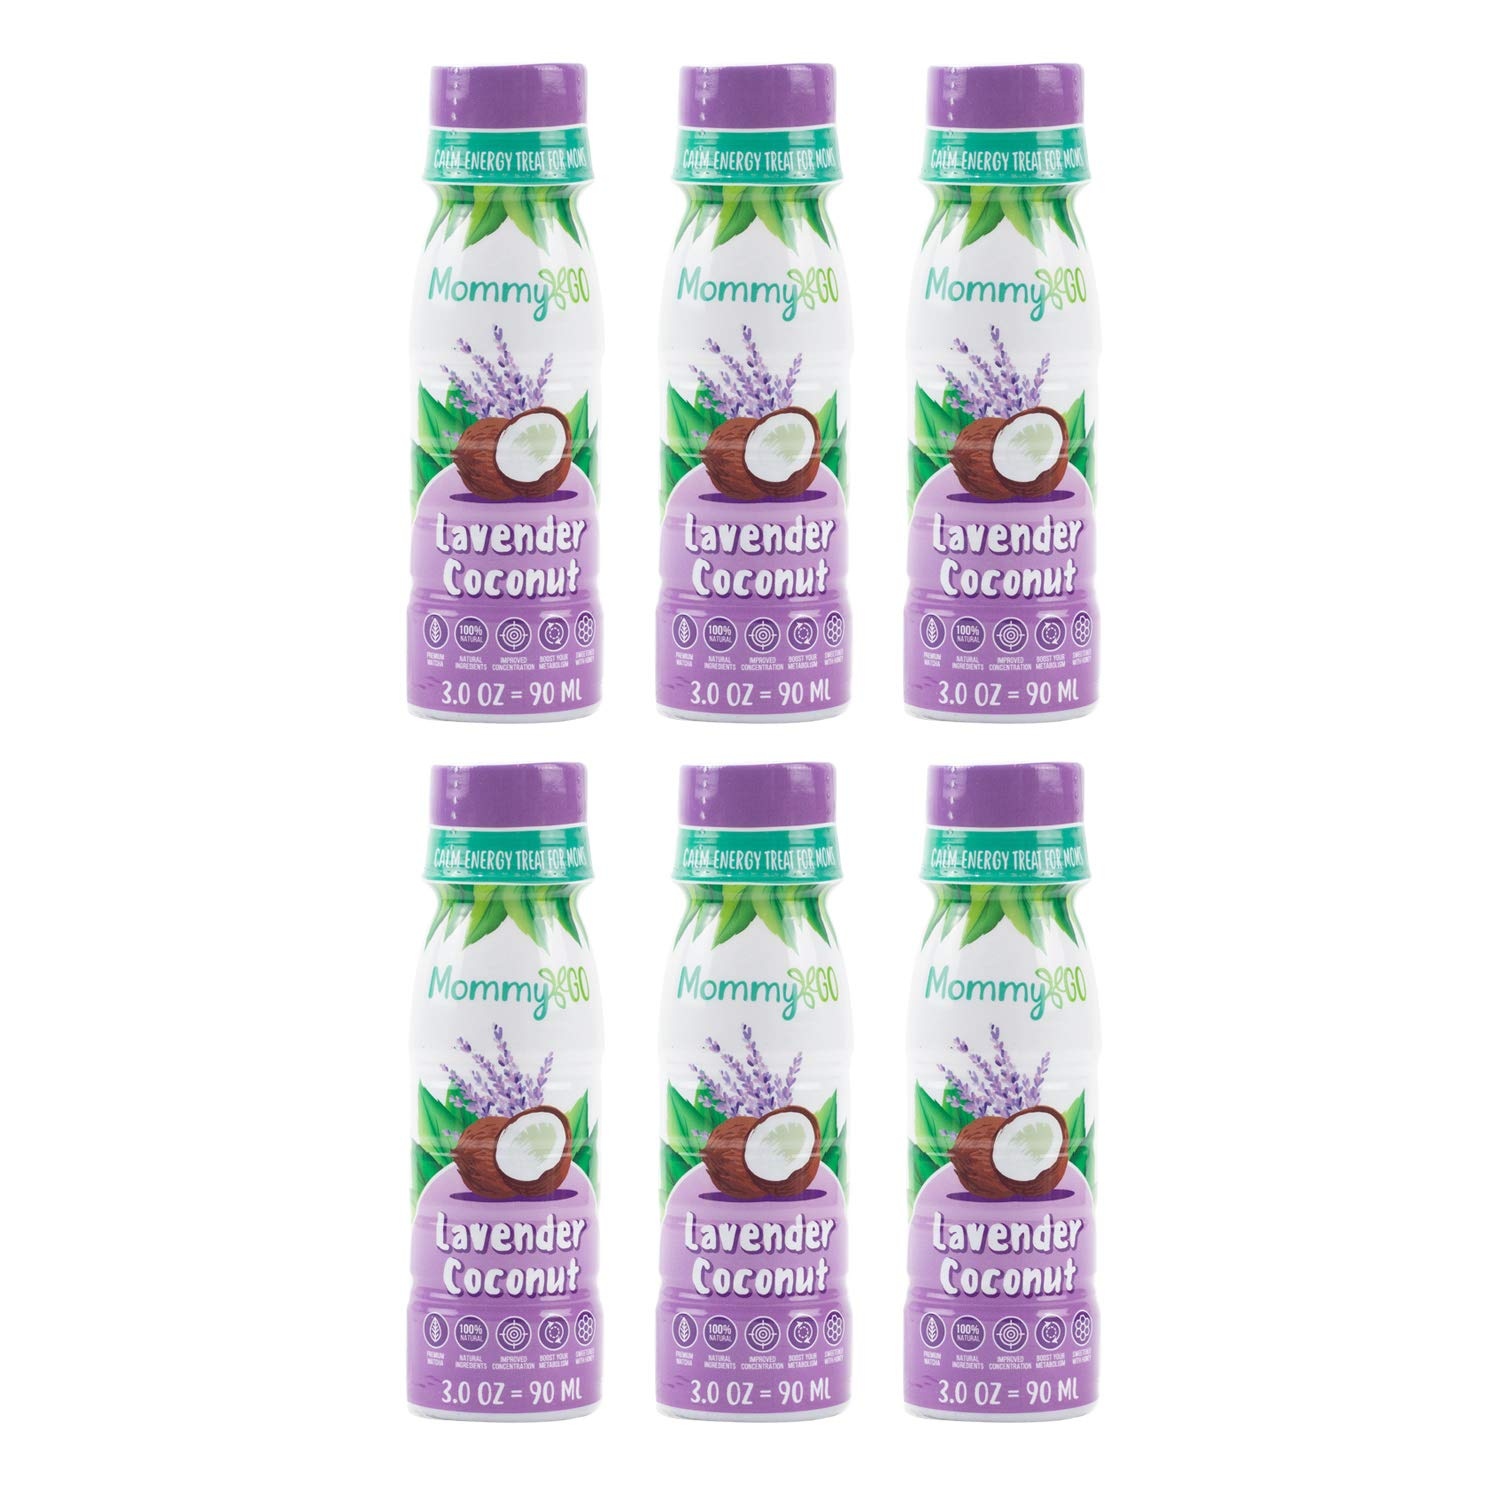 MommyGo Natural Energy Shots- Extra Strength Brain Boost Supplement with Matcha Green Tea for Boost In Daily Performance, Energy, Mood & Alertness- Delicious Lavender Coconut Flavor 6 Pack by Mommy GO